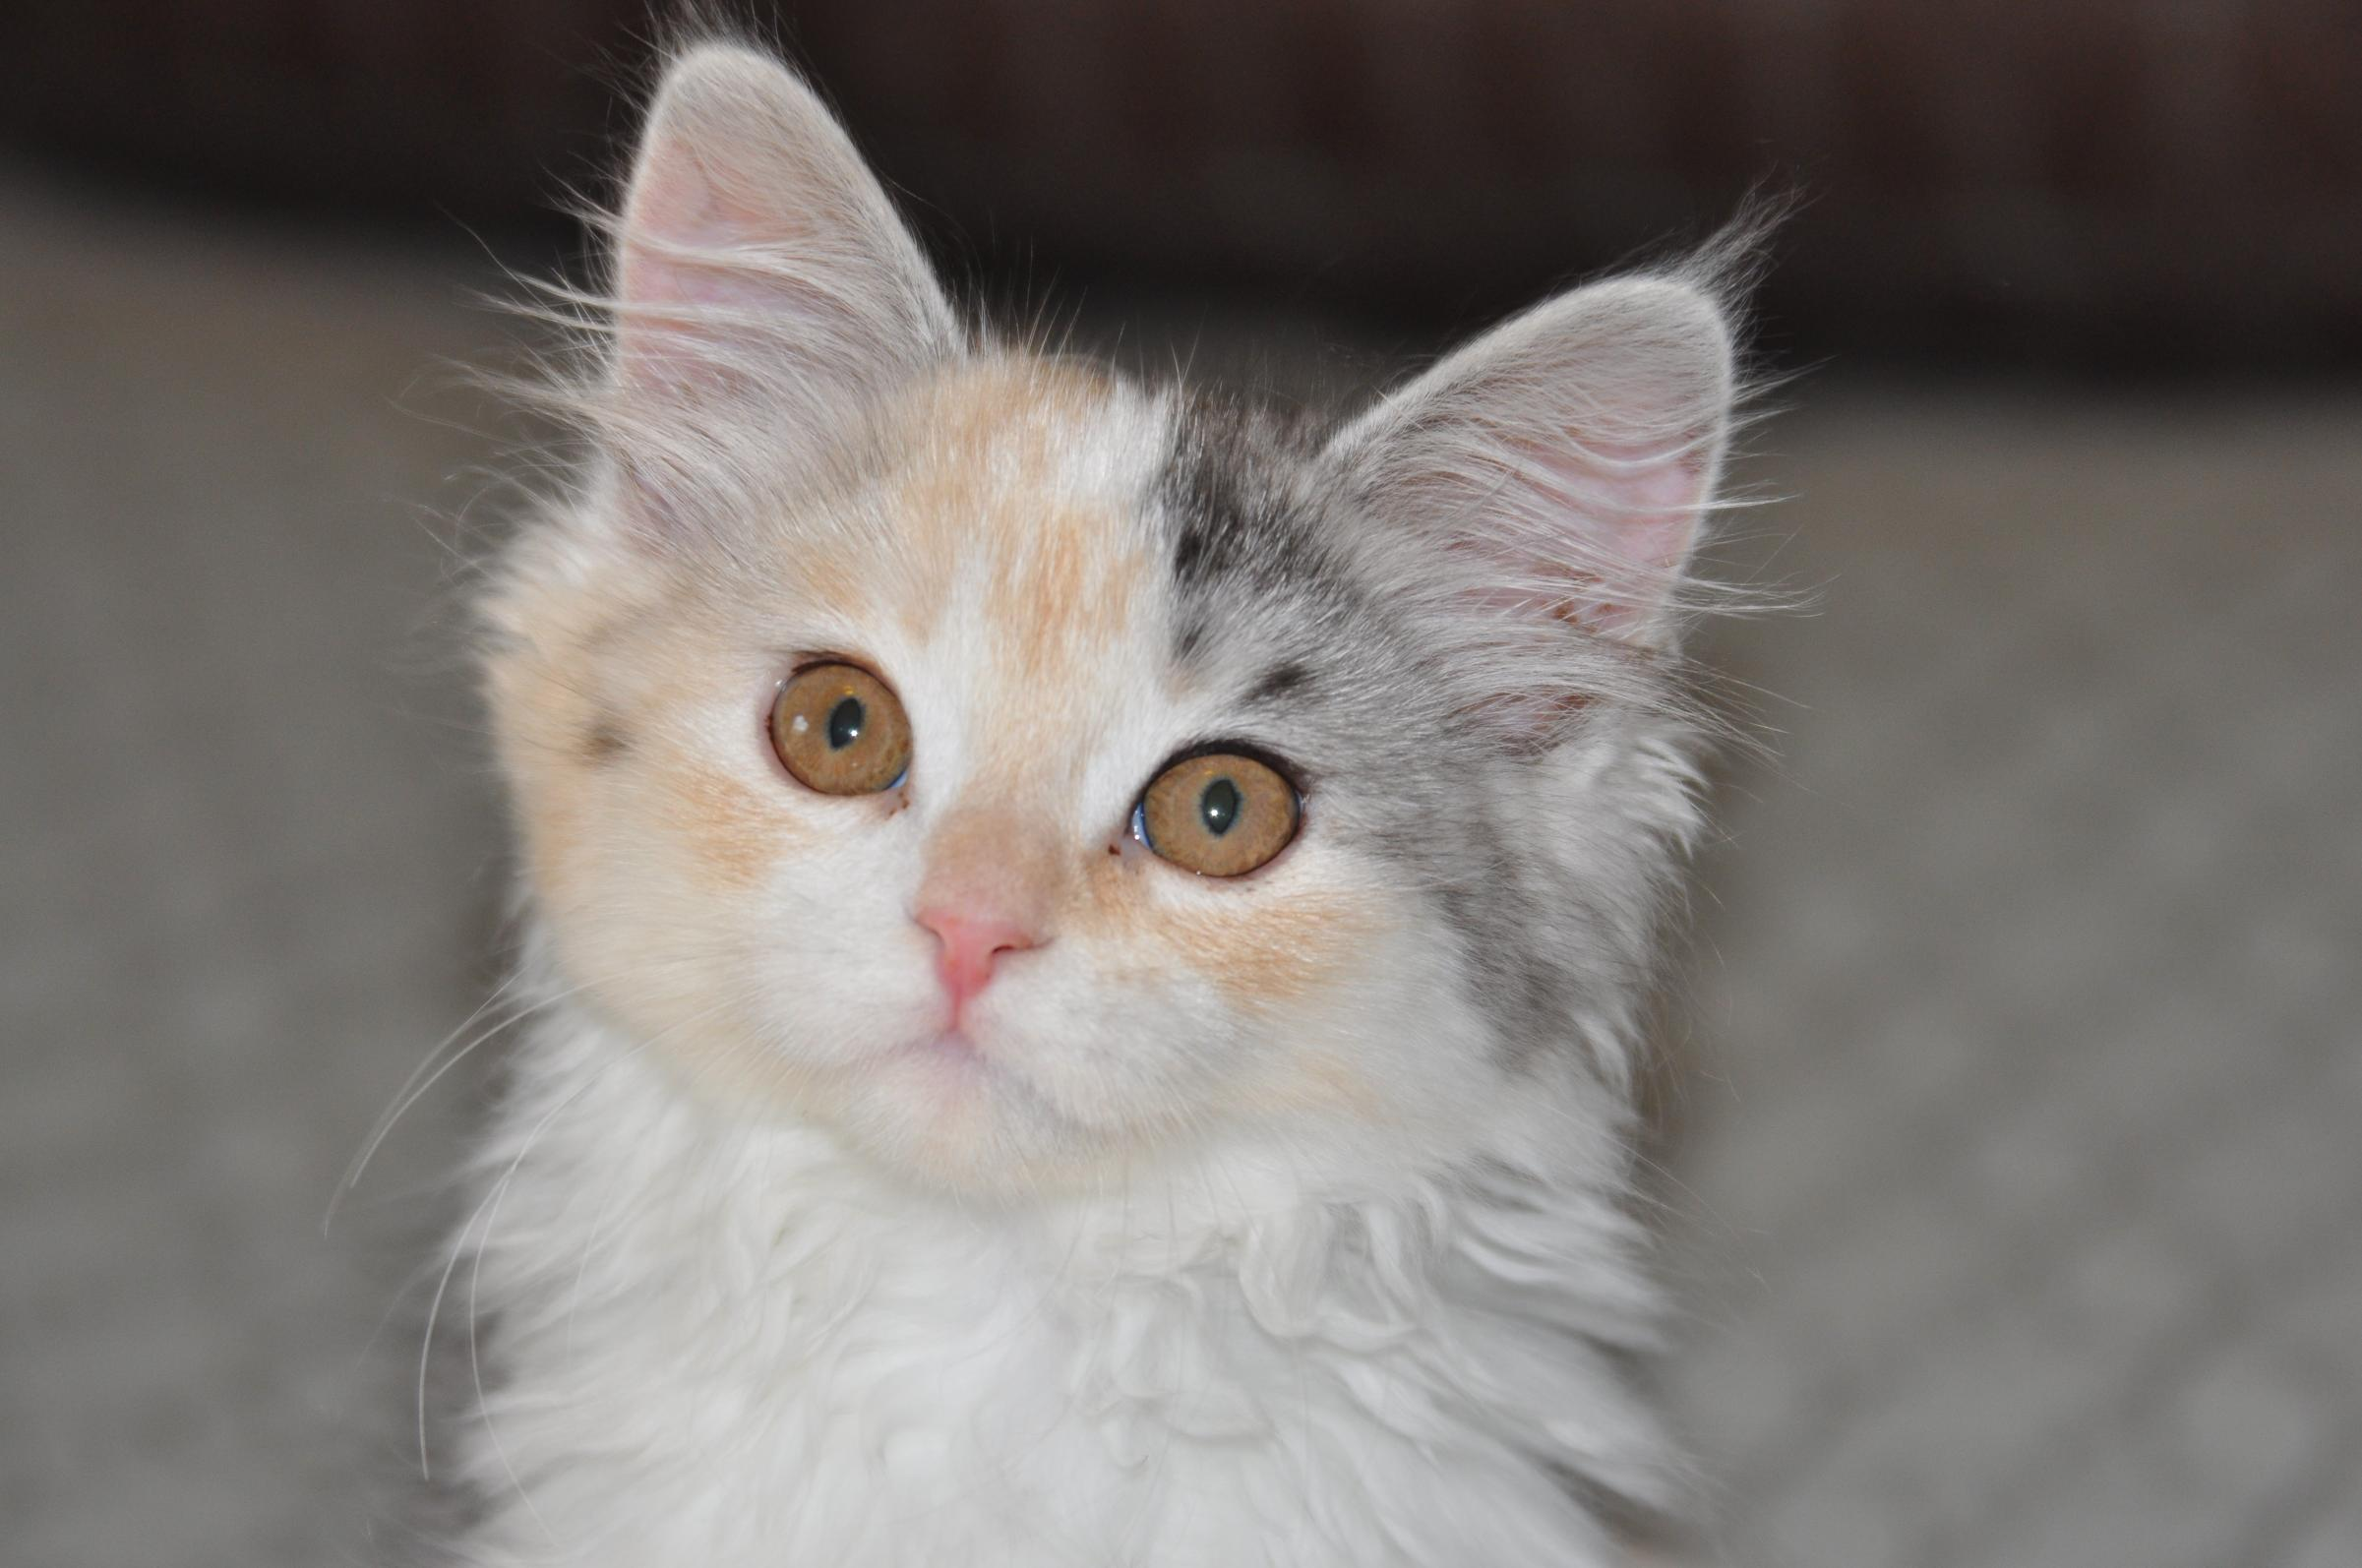 Zeva the Siberian Kitten at 10 weeks